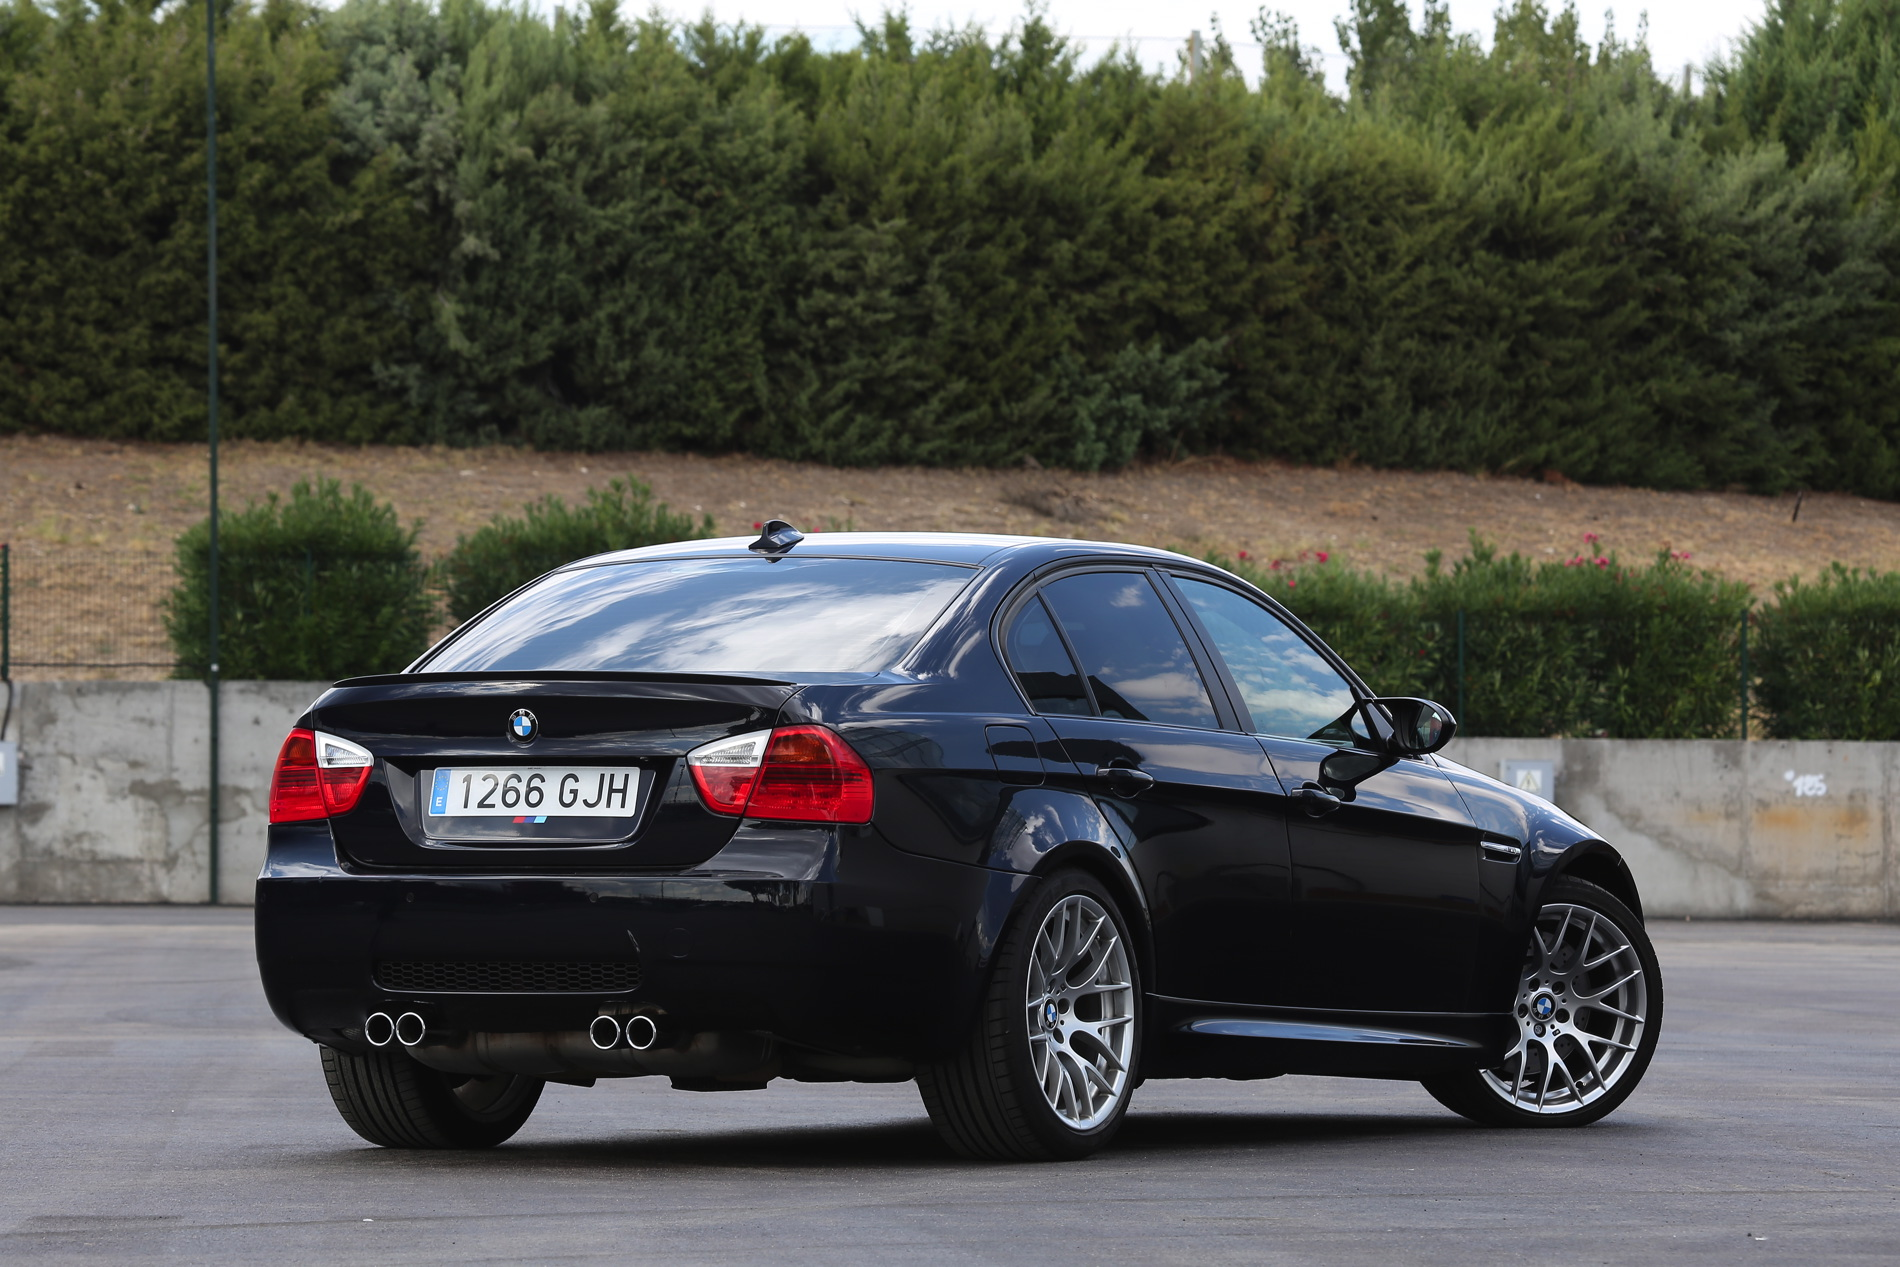 The Bmw E90 M3 Is Still Quite A Looker